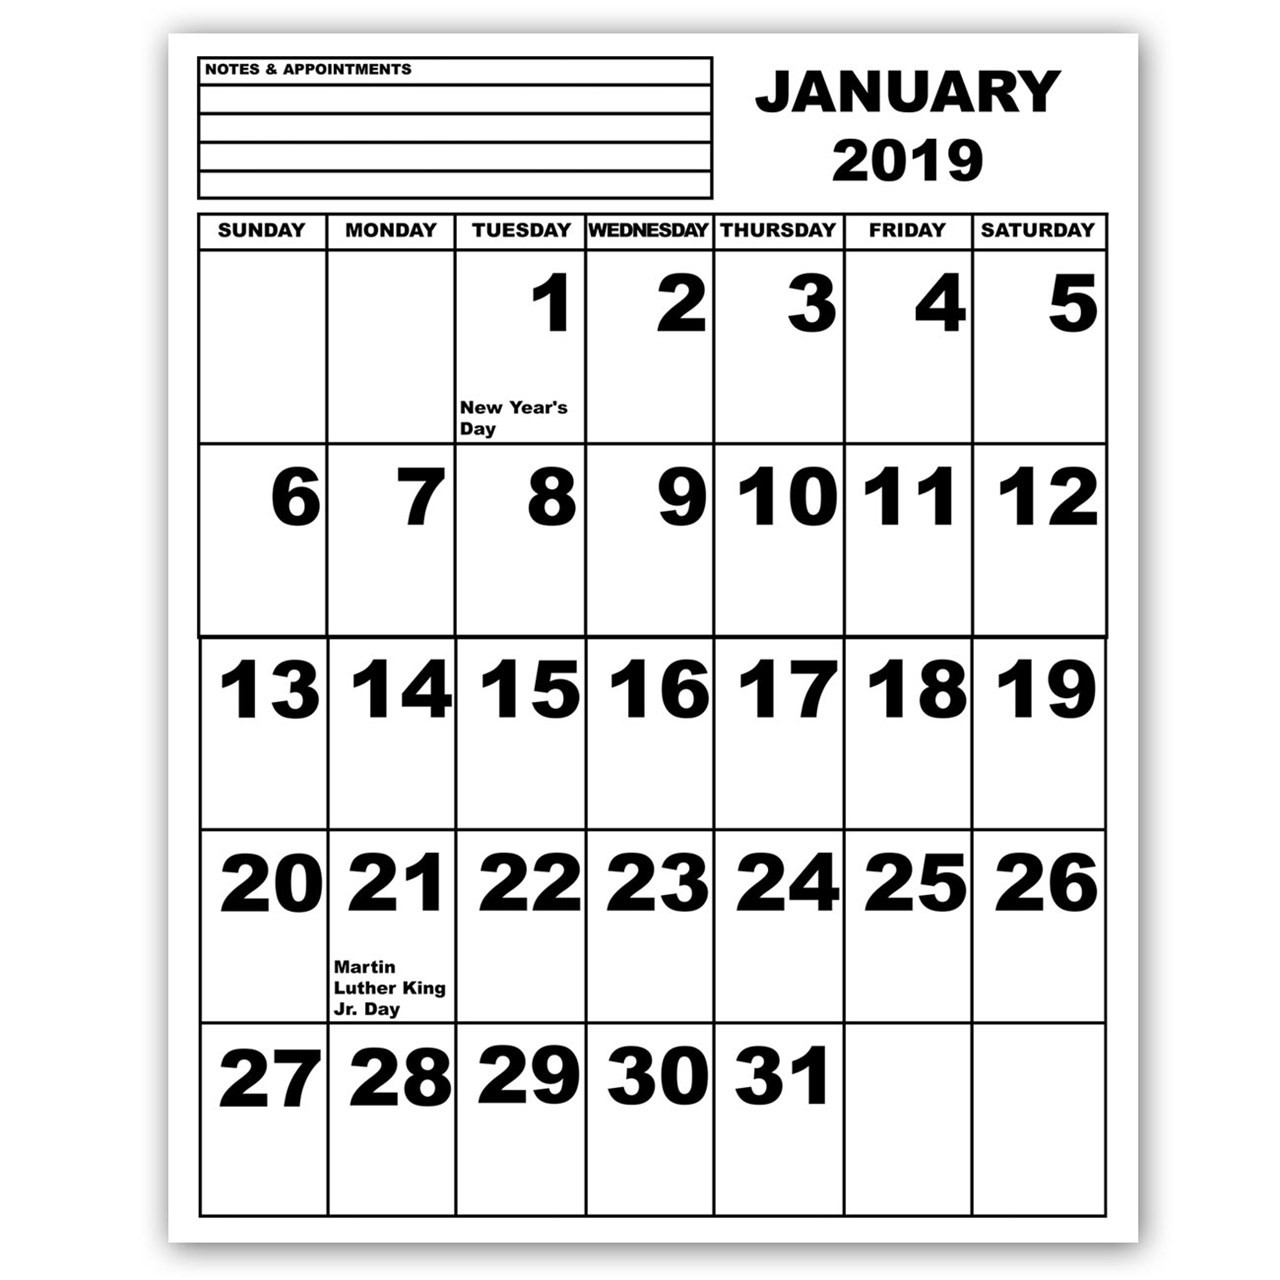 Free Calendar Templates For The Blind - Calendar Inspiration  Free Calendar For The Blind